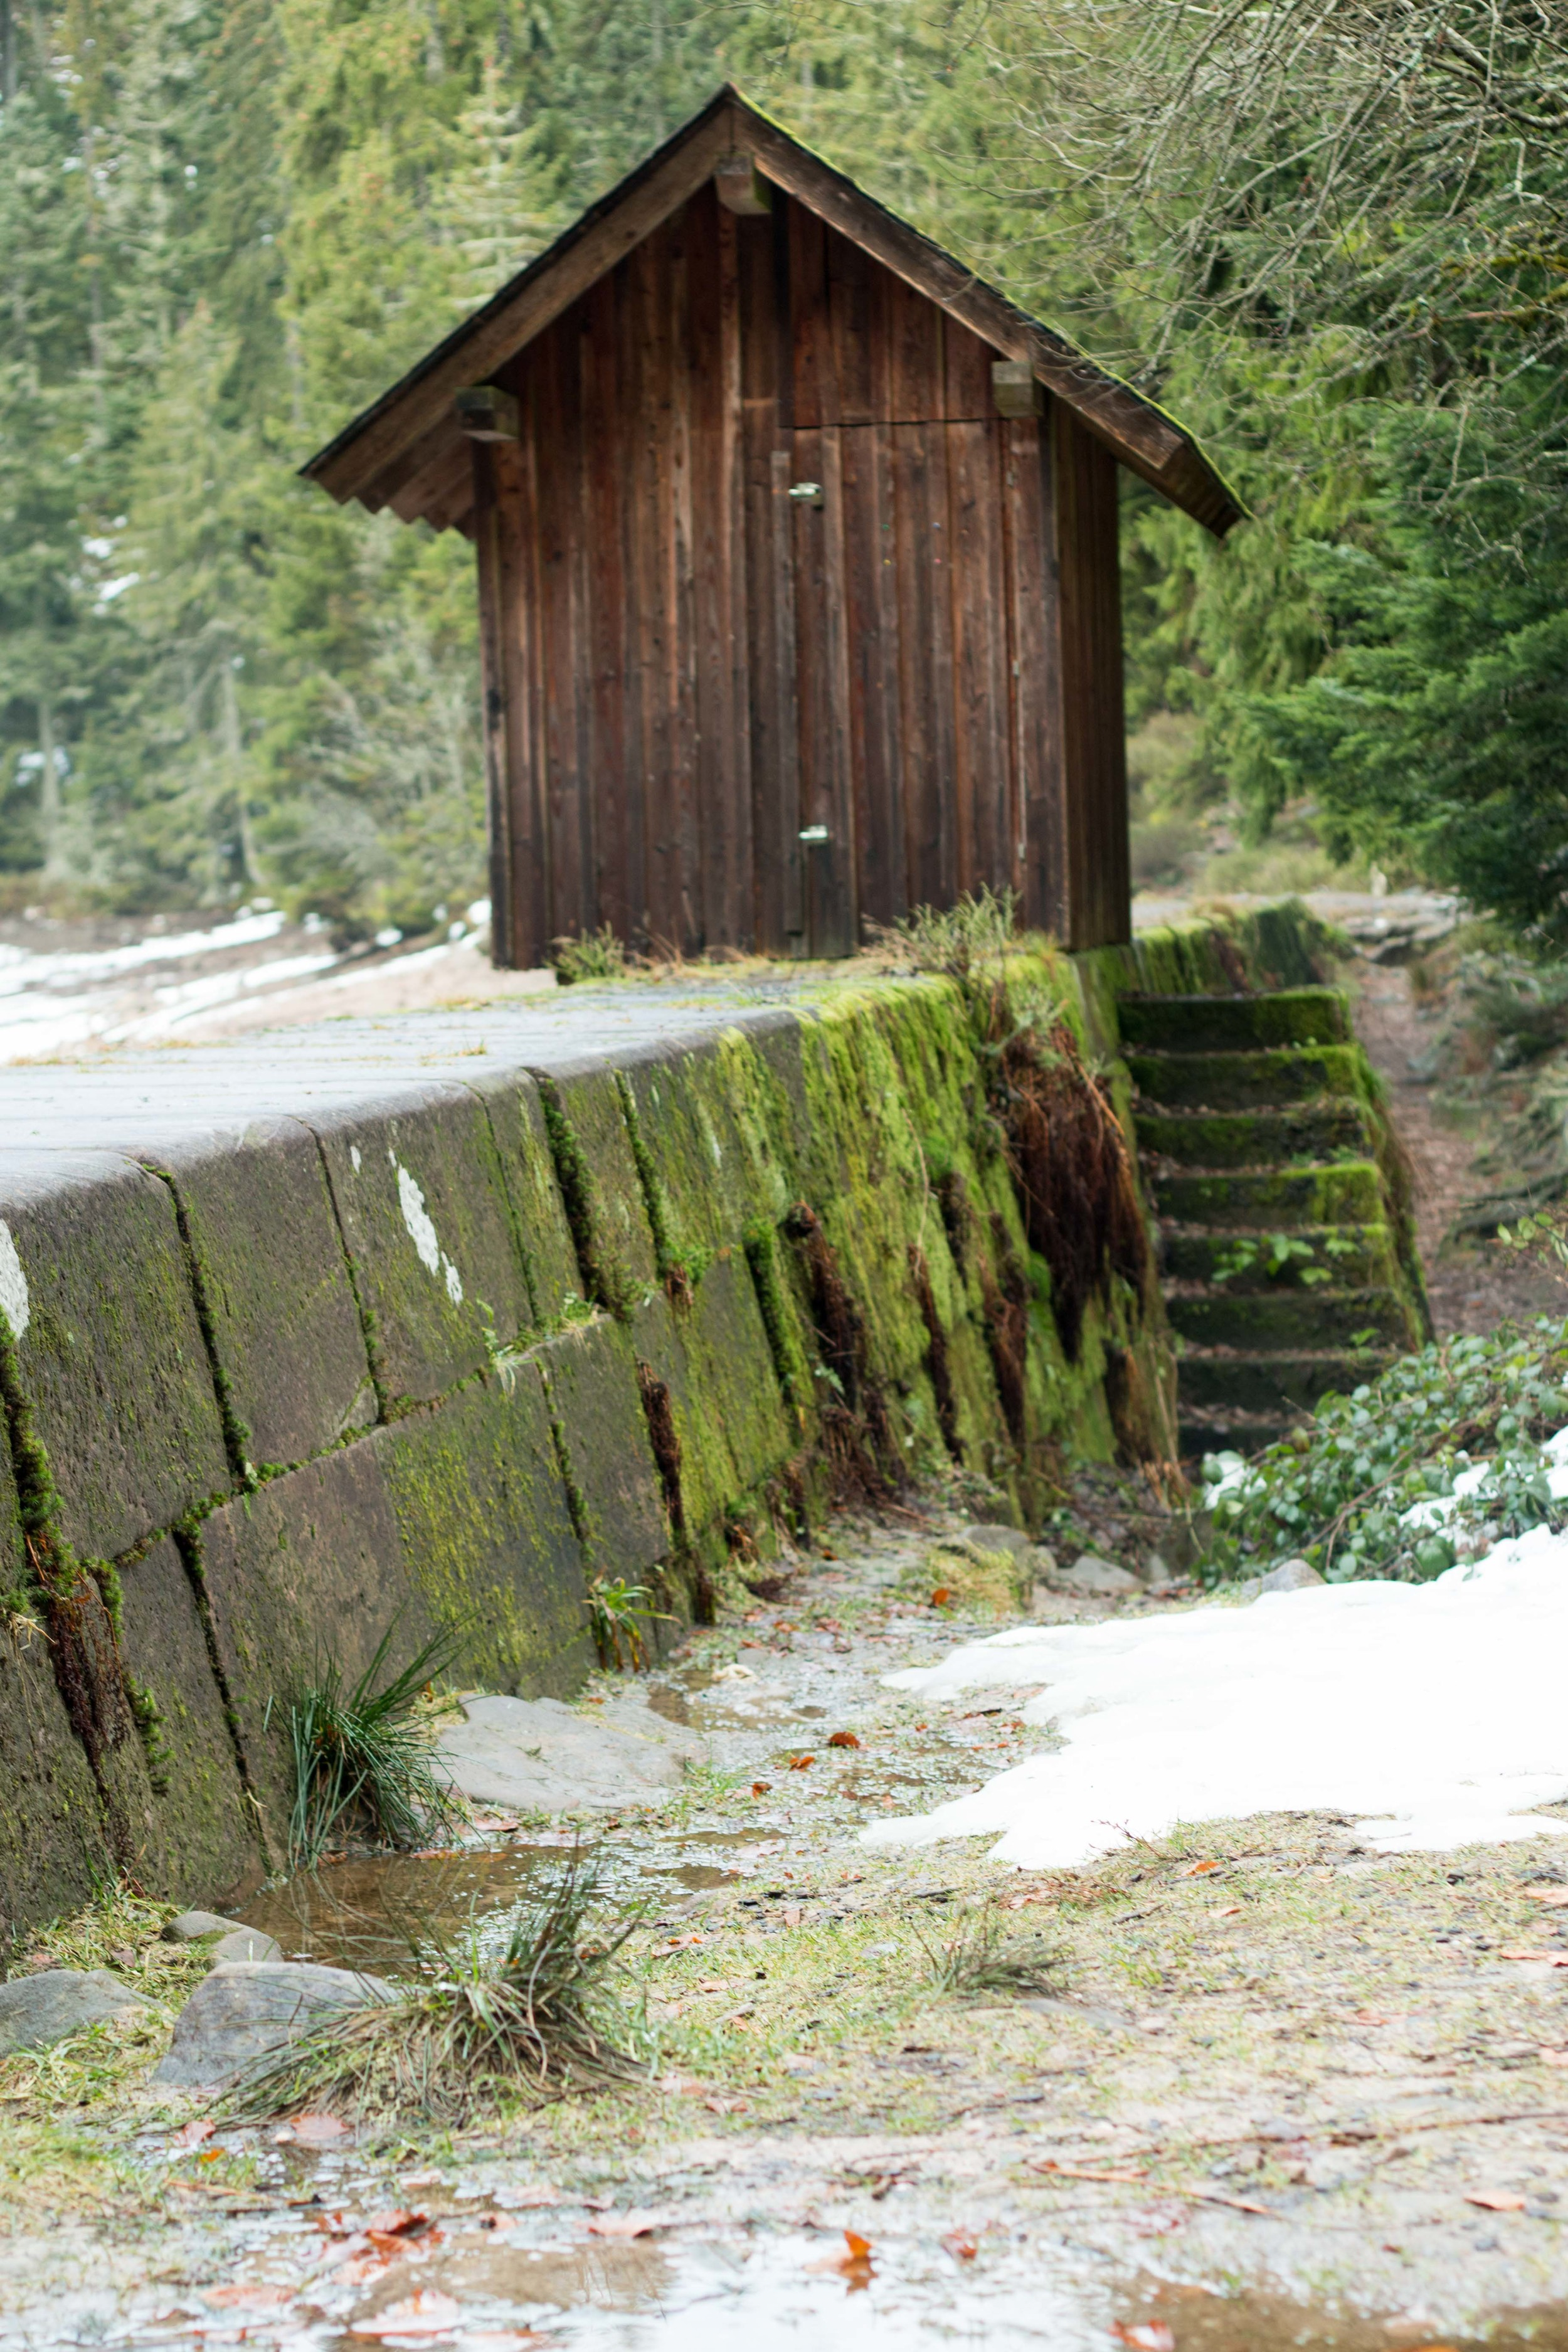 Shack guarding the opening in the dam to let water flow from the lake into a river